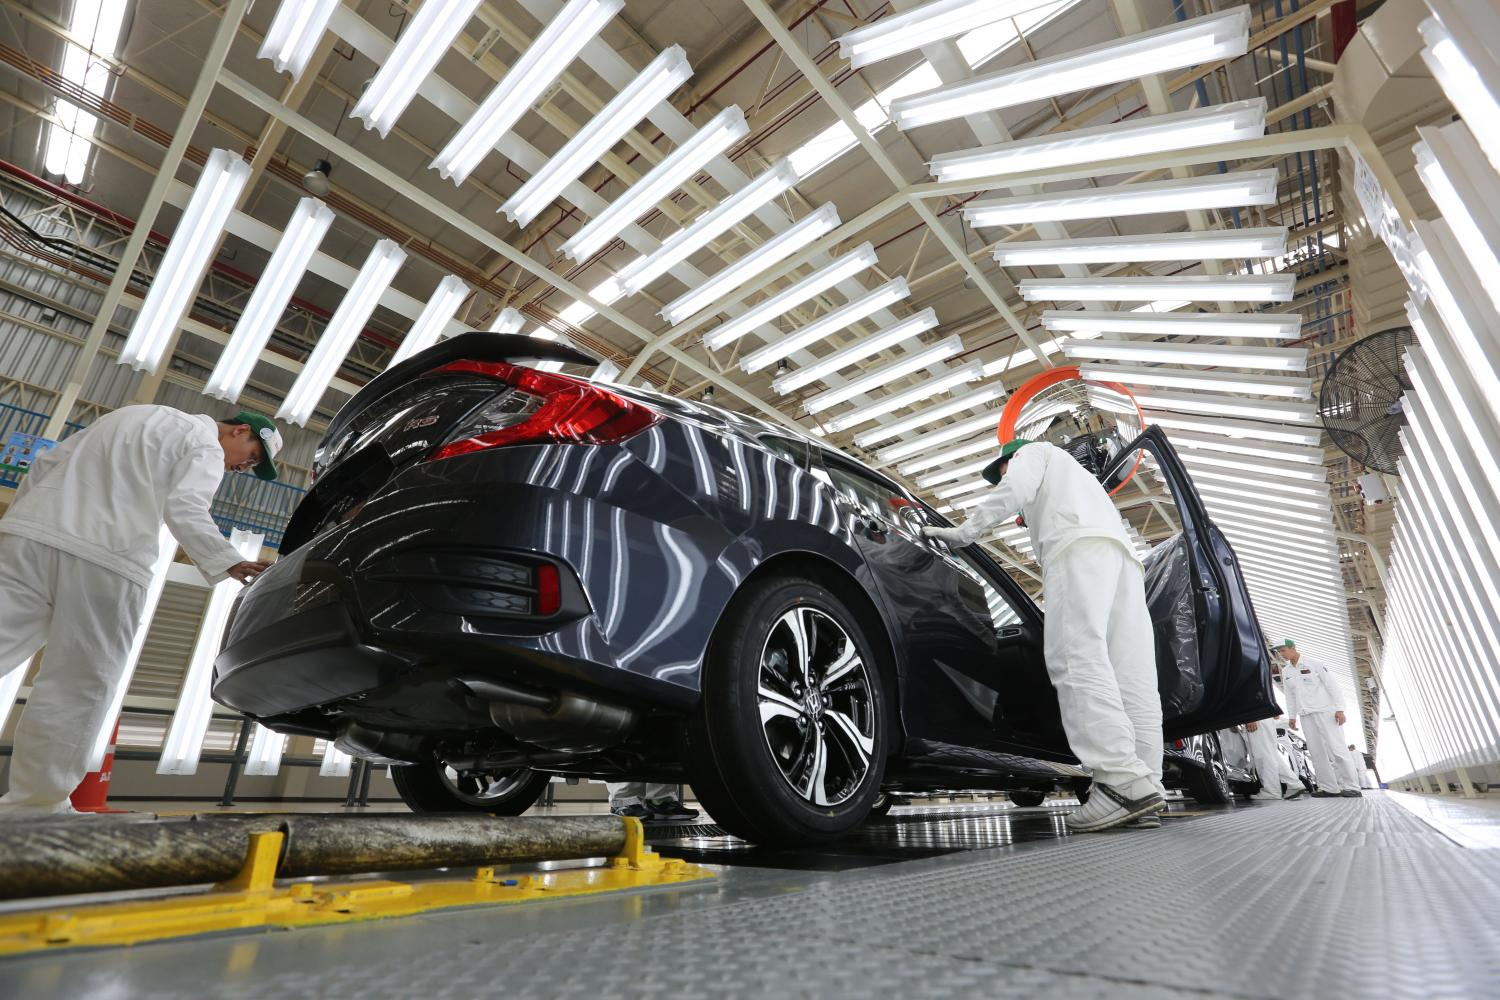 Assembly workers inspect a car at a factory in Prachin Buri. Car production fell 29.4% in the January-April period. Pattanapong Hirunard